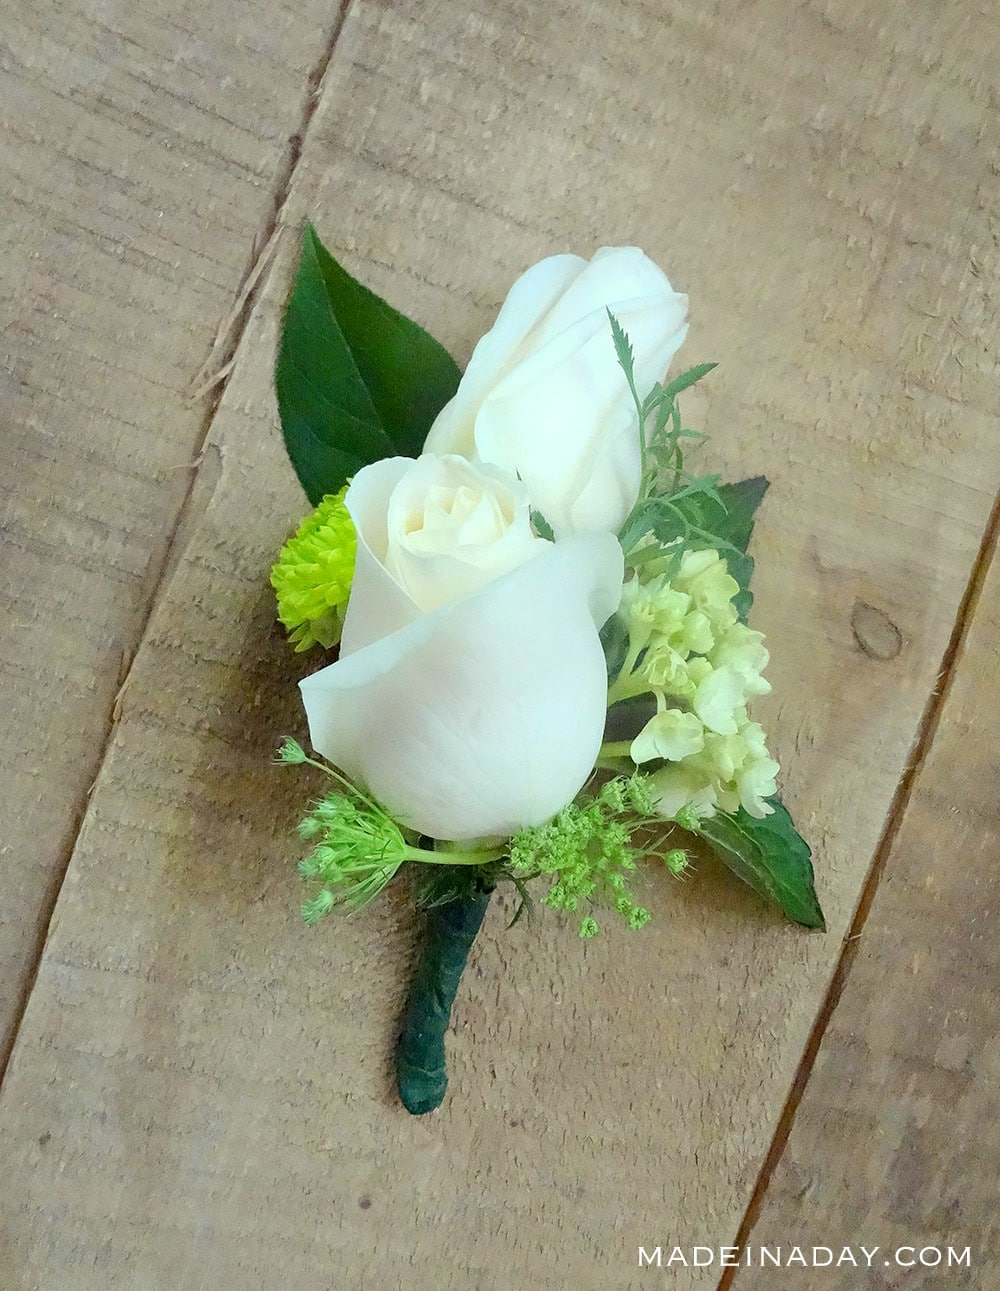 prom corsage, how to make a homemade corsage, funeral corsage